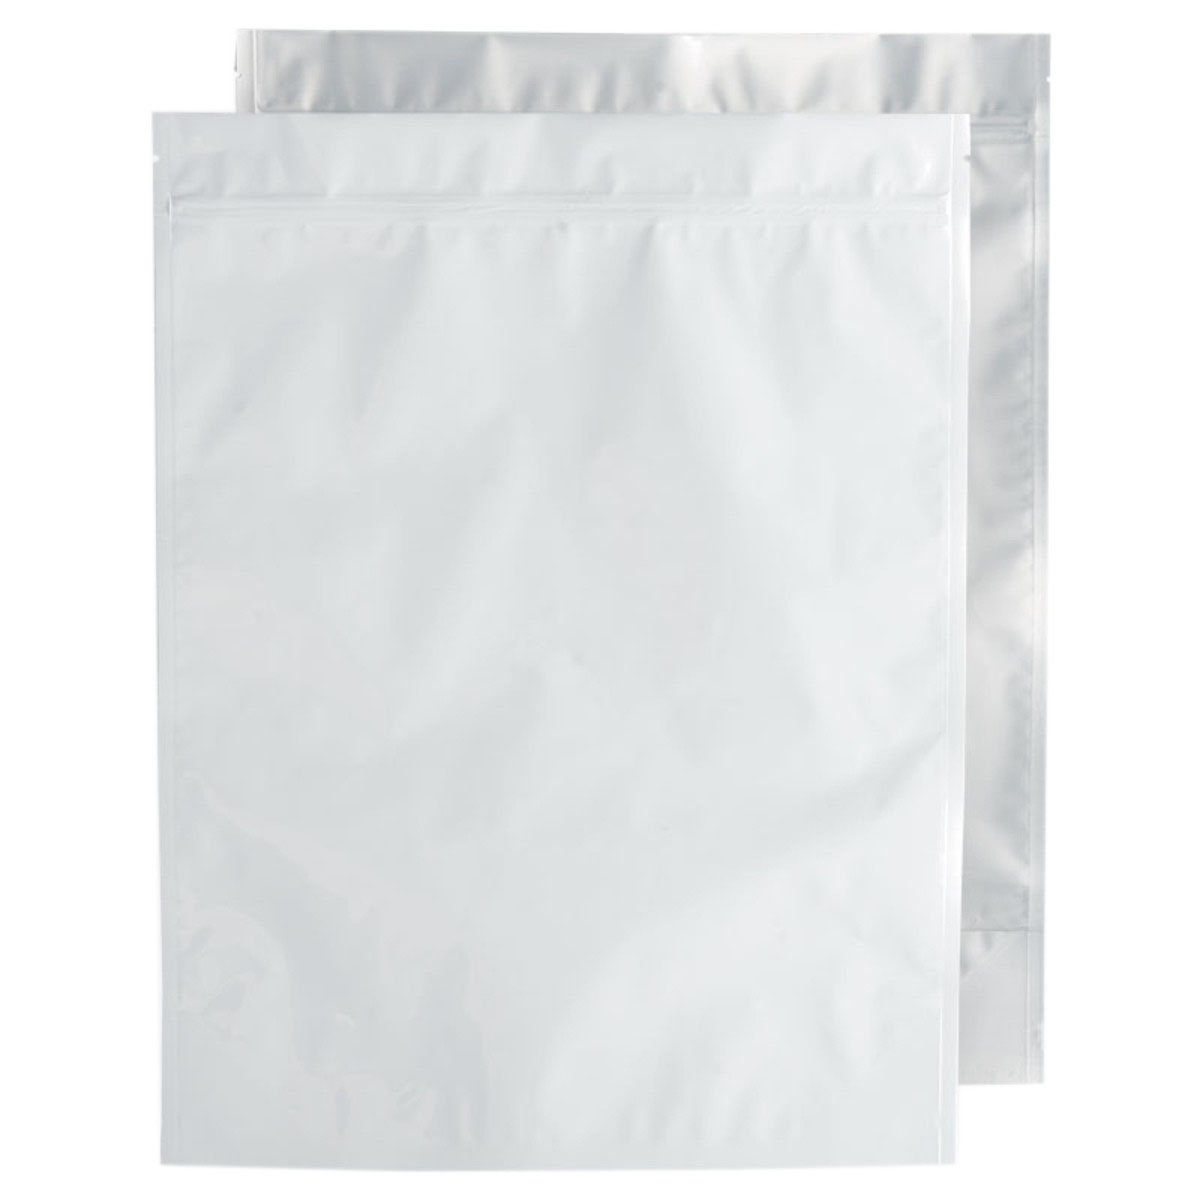 One Pound White/clear Barrier Bags (50 Qty.)